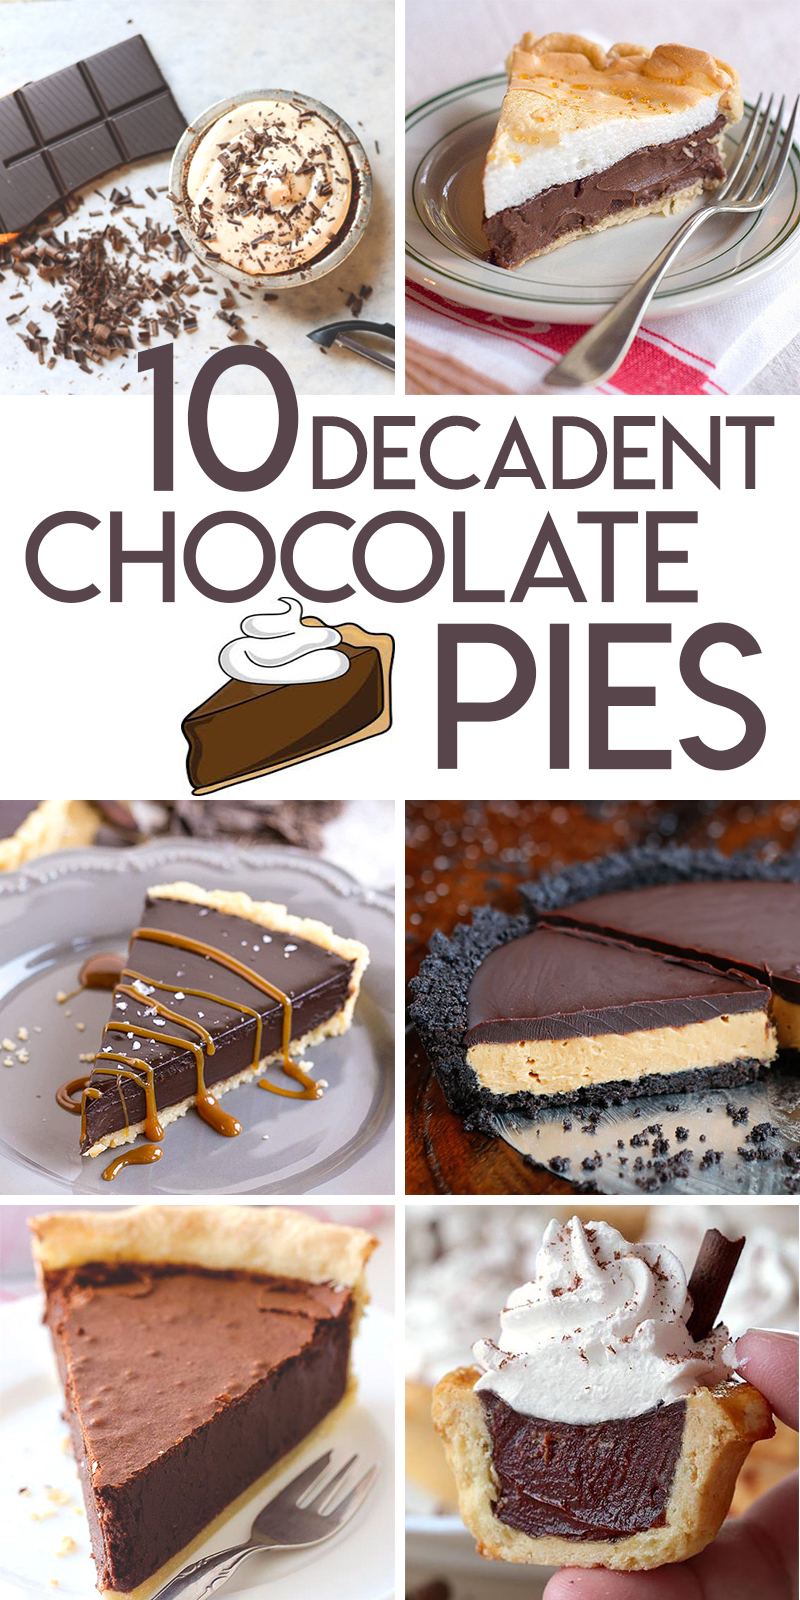 10 decadent chocolate pie recipes